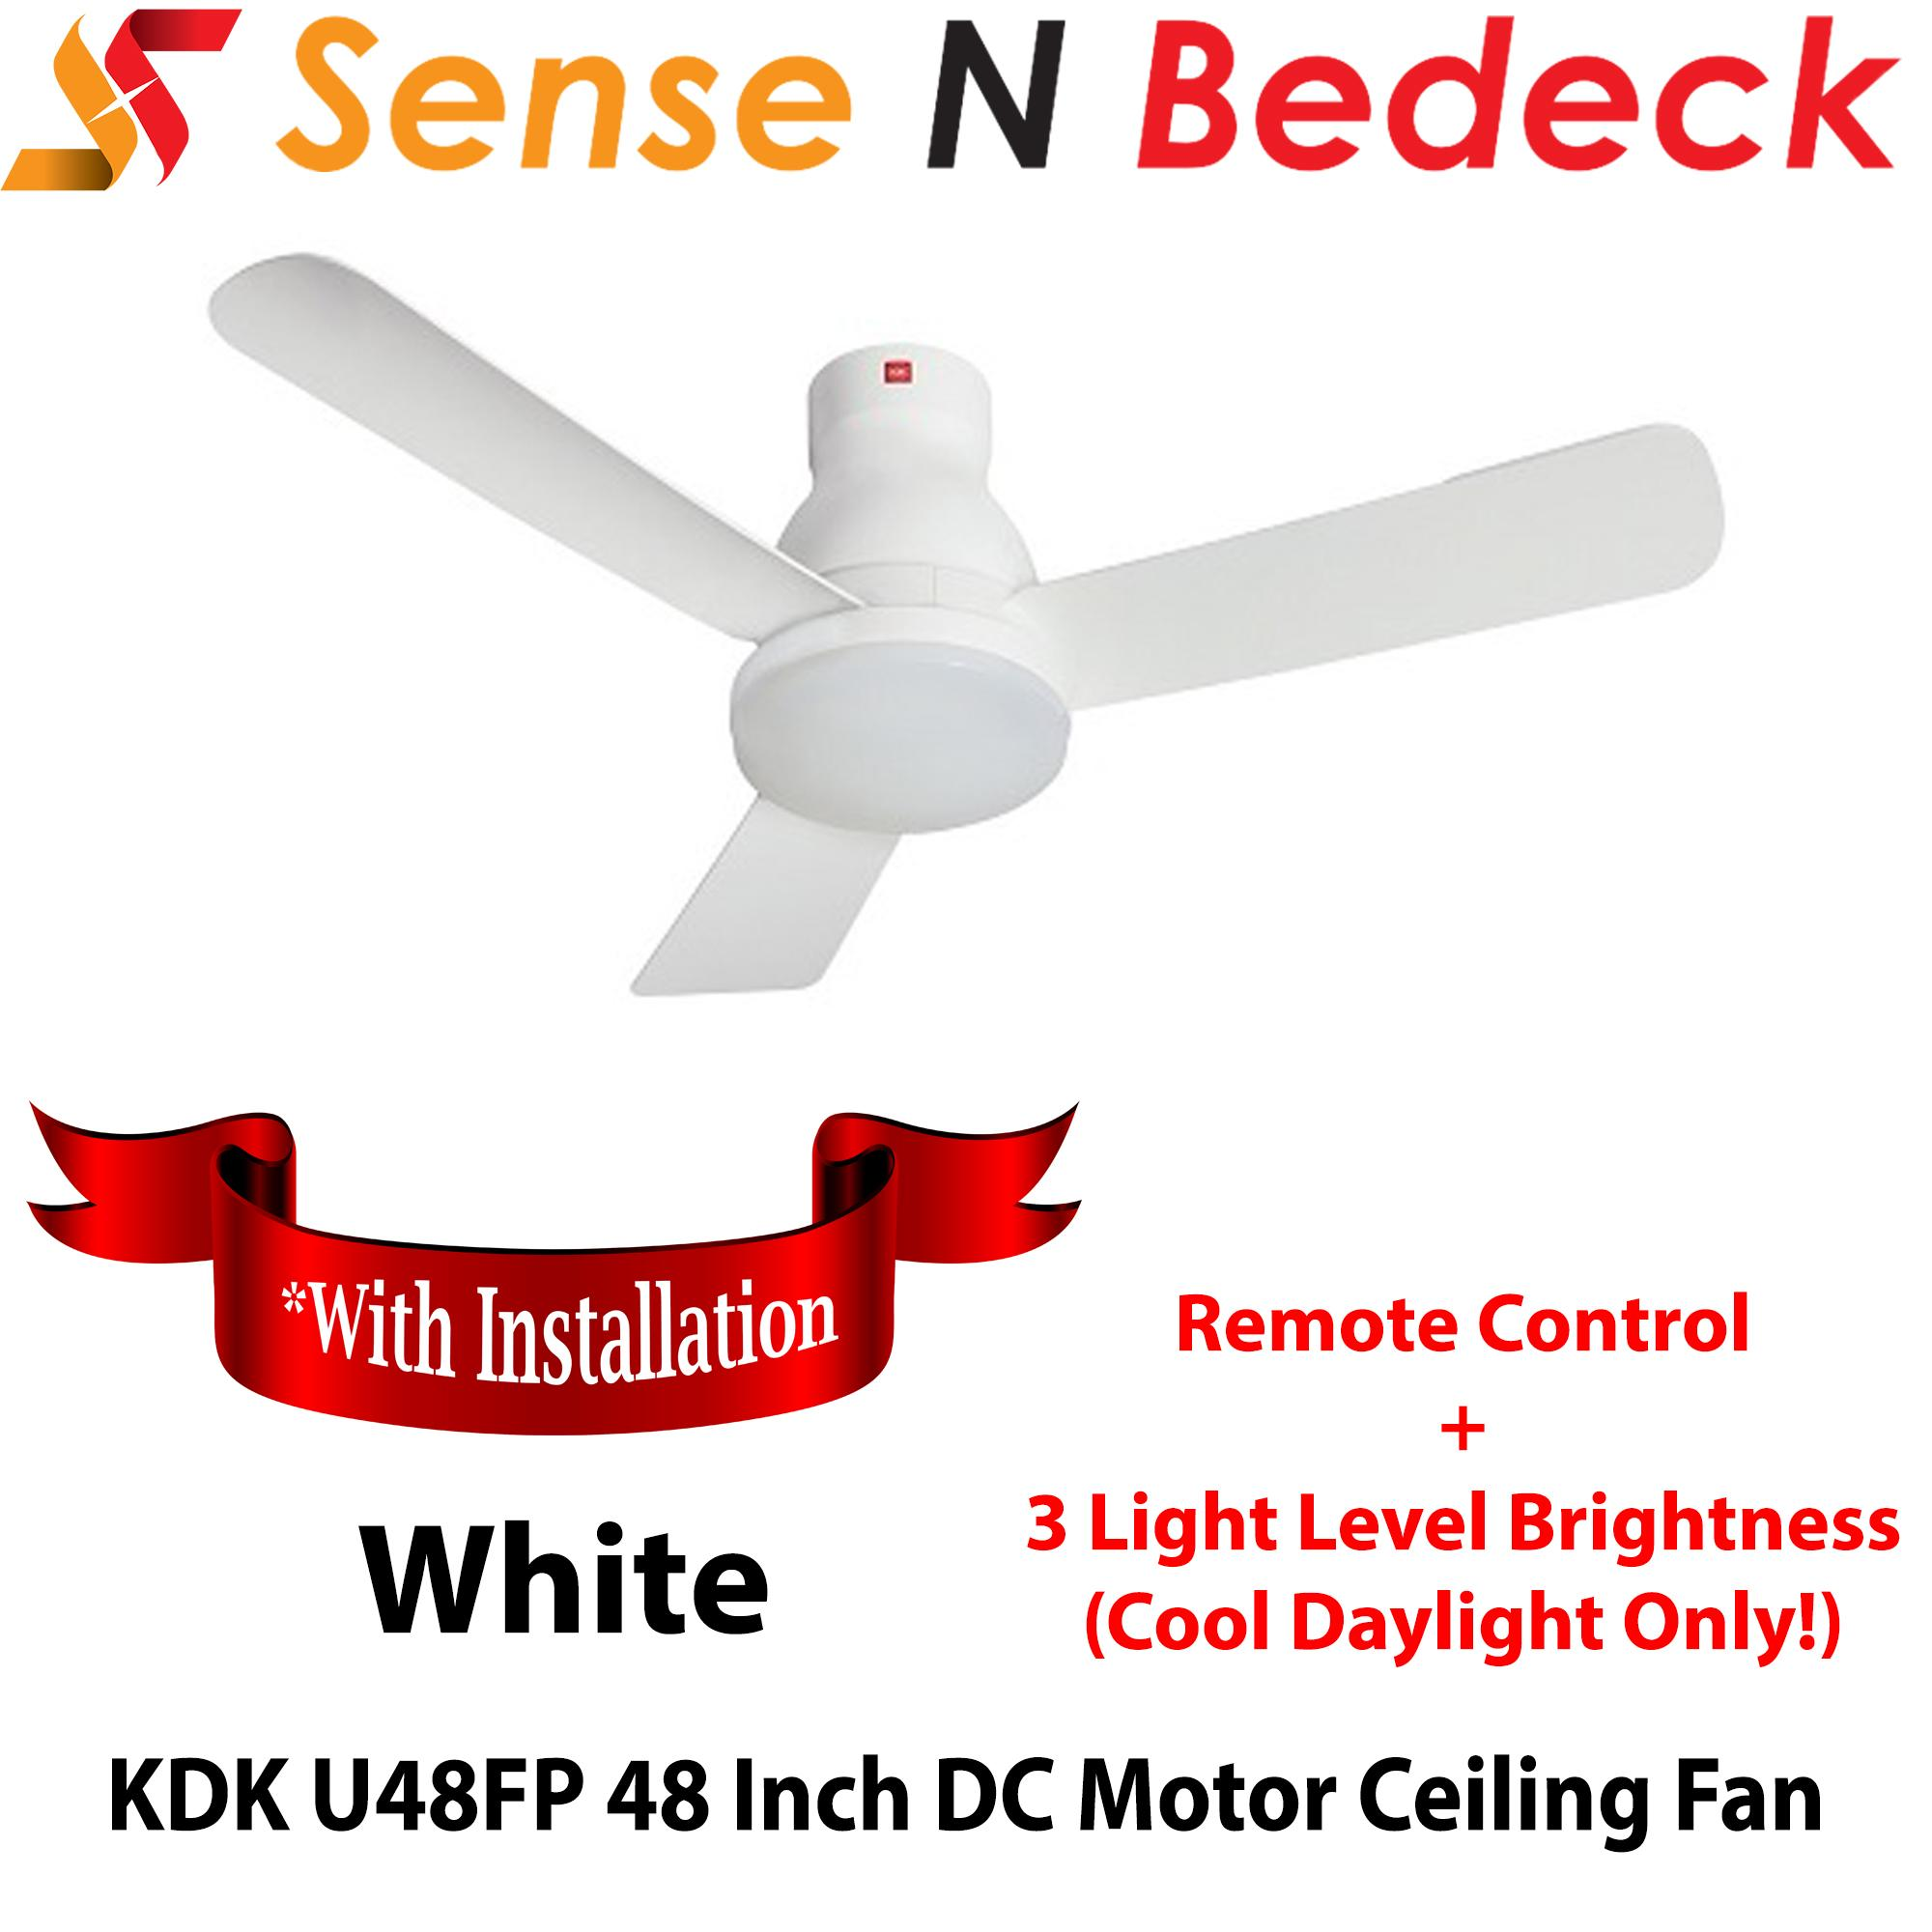 KDK U48FP 48 Inch LED DC Motor Ceiling Fan *With installation